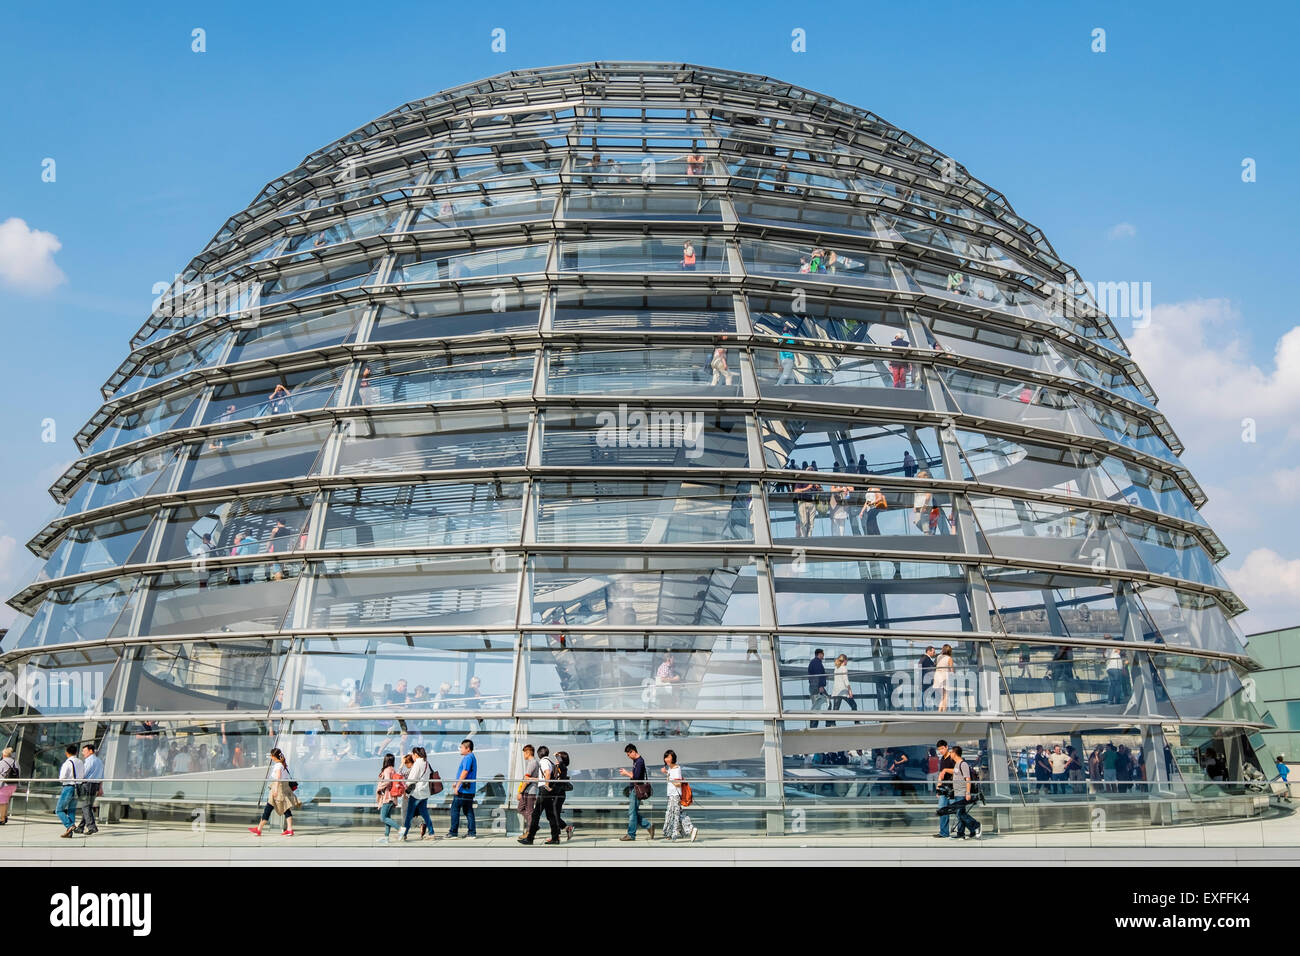 The glass dome above the Reichstag parliament building in Berlin Germany - Stock Image